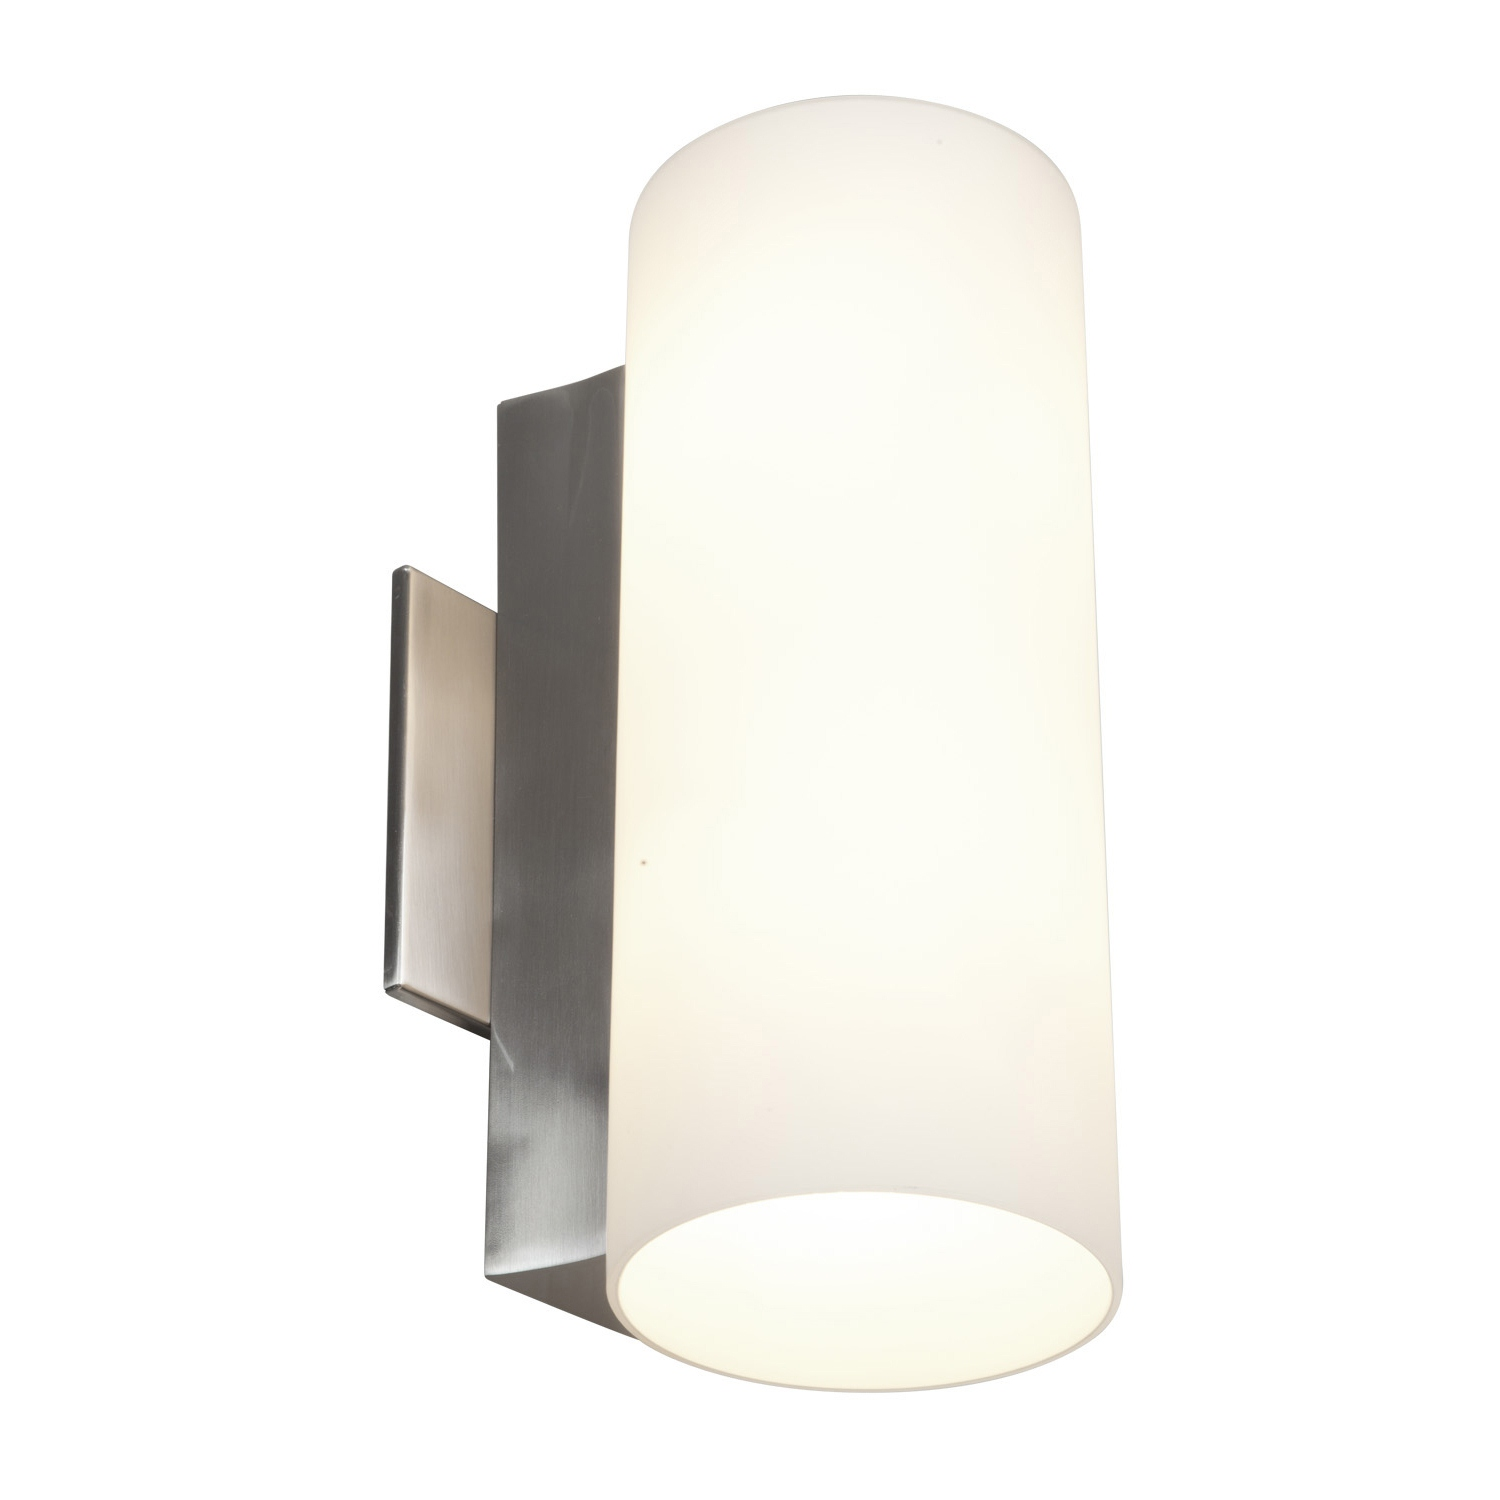 Add Beauty to Your Home with 2 light wall sconces Warisan Lighting